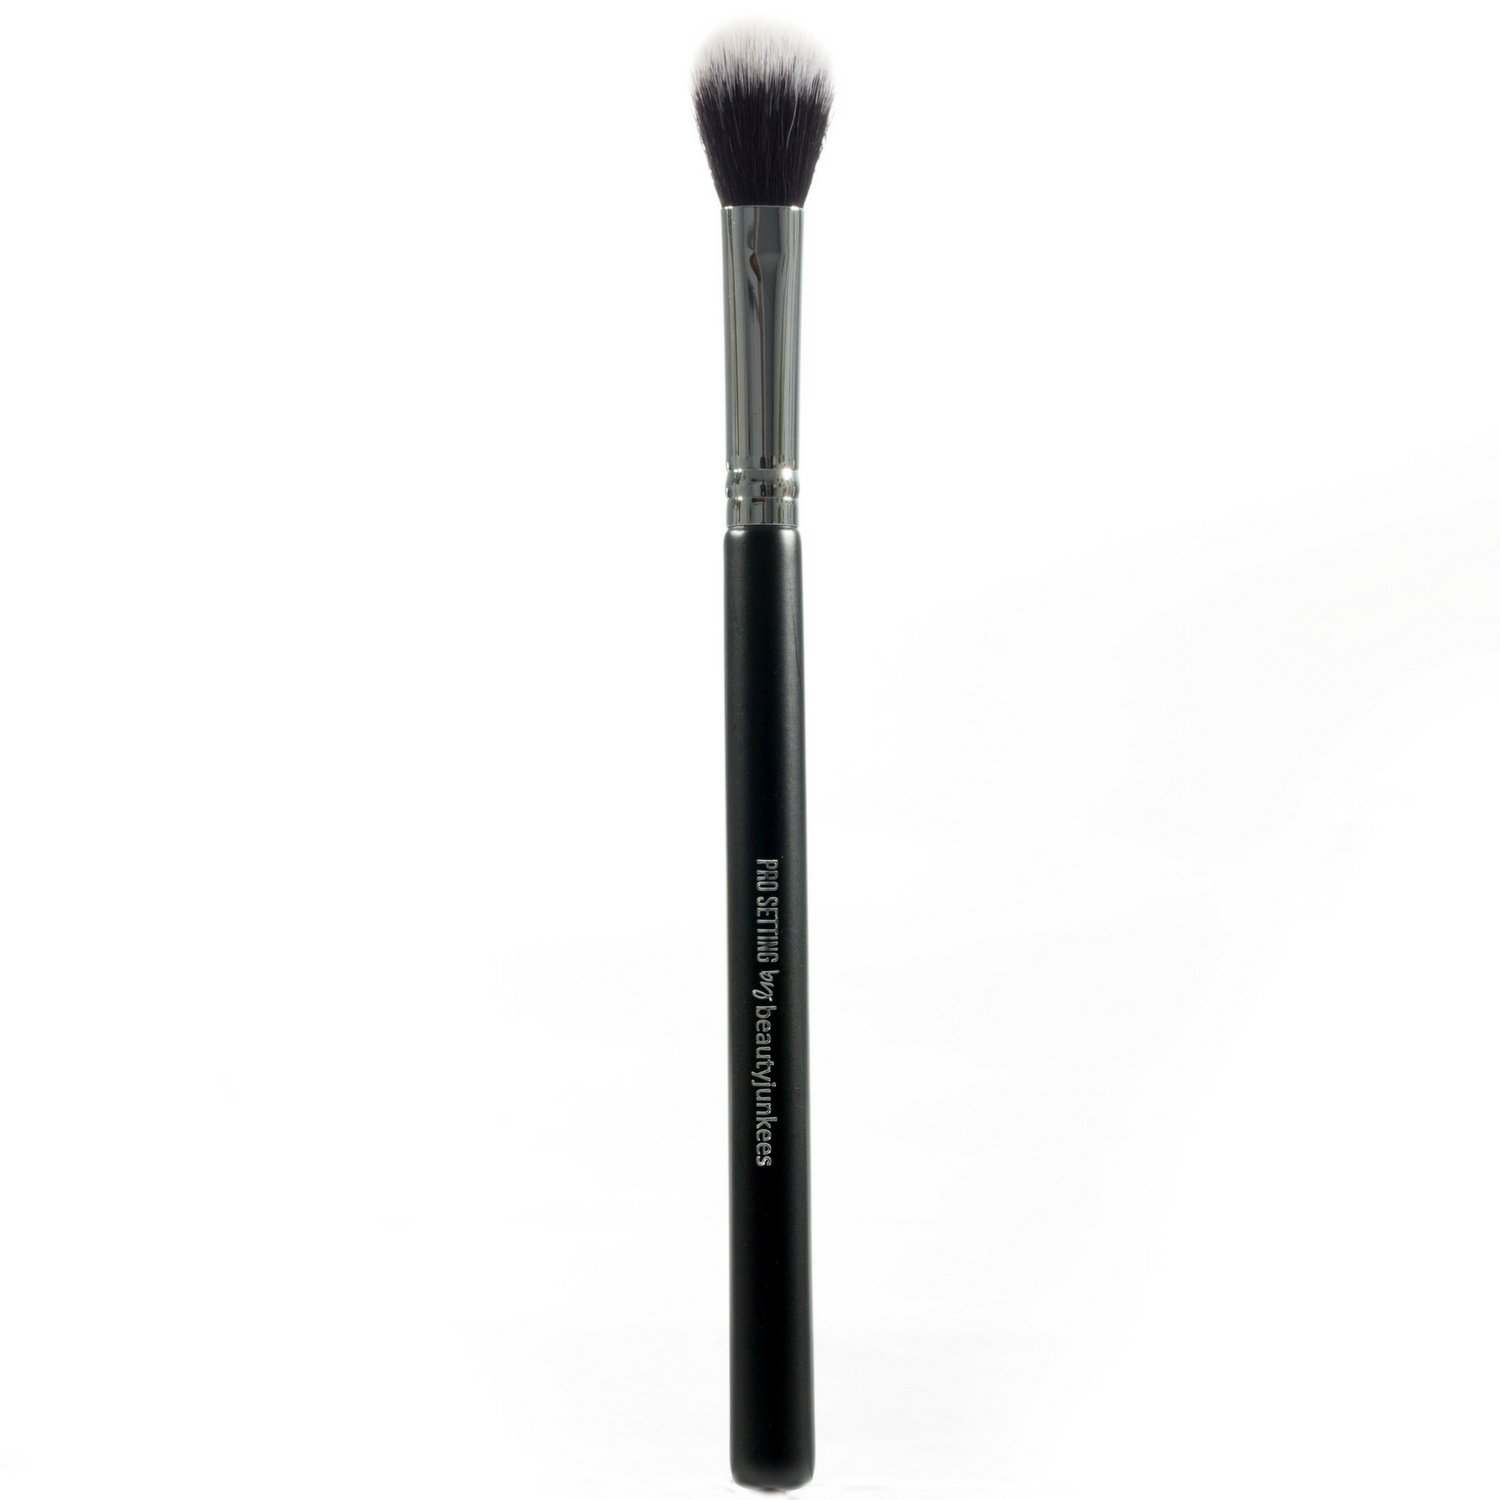 Under Eye Setting Powder Brush , Small Soft Fluffy Tapered Blending Makeup  Brush to Set Concealer, Buffing and Finishing Loose, Pressed, Compact,